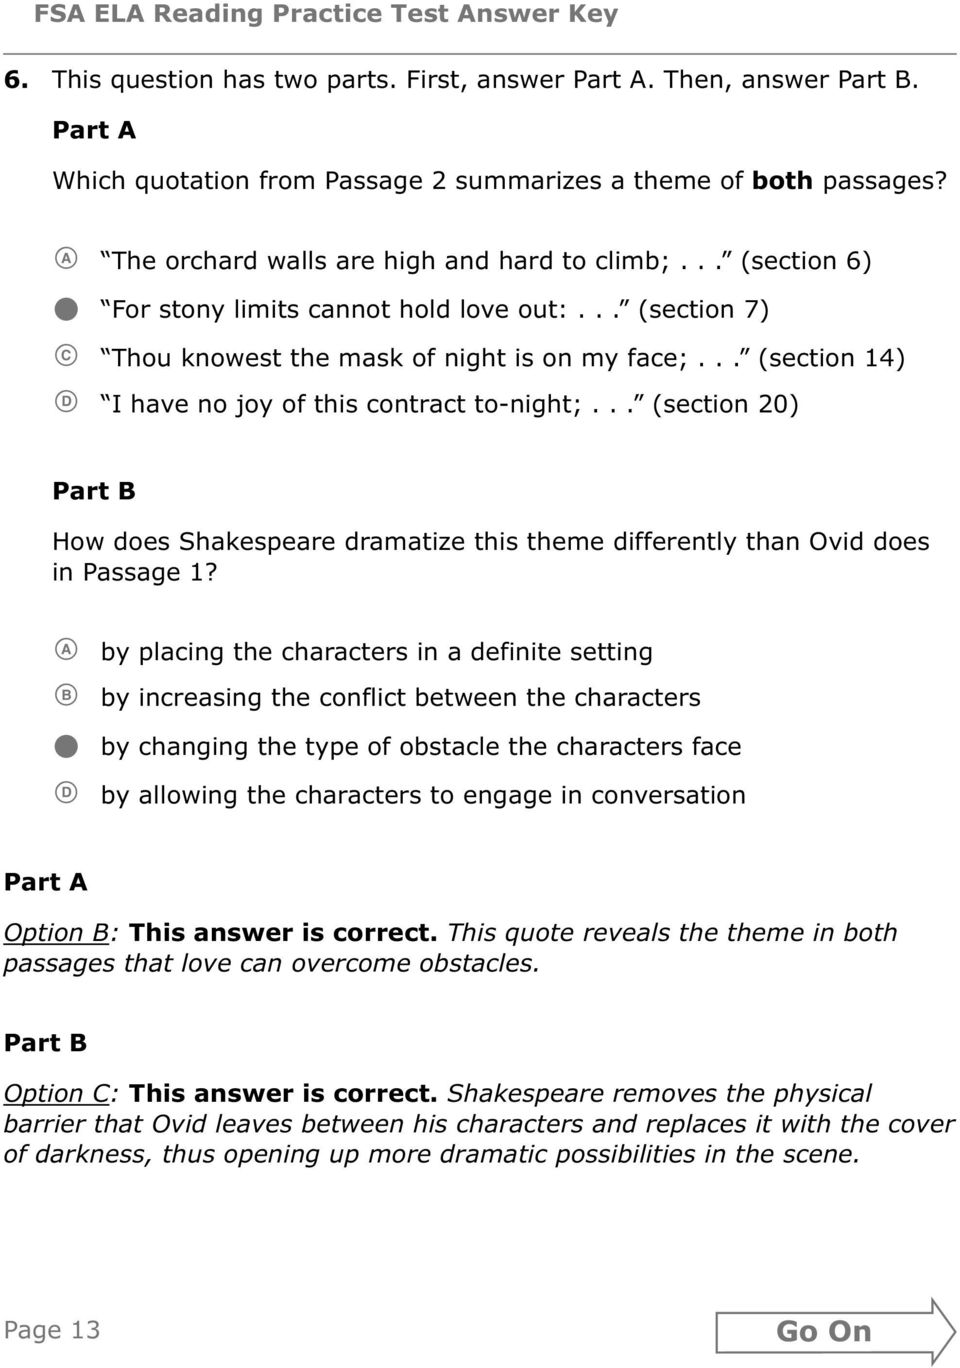 Grade 10 Fsa Ela Reading Practice Test Answer Key Pdf